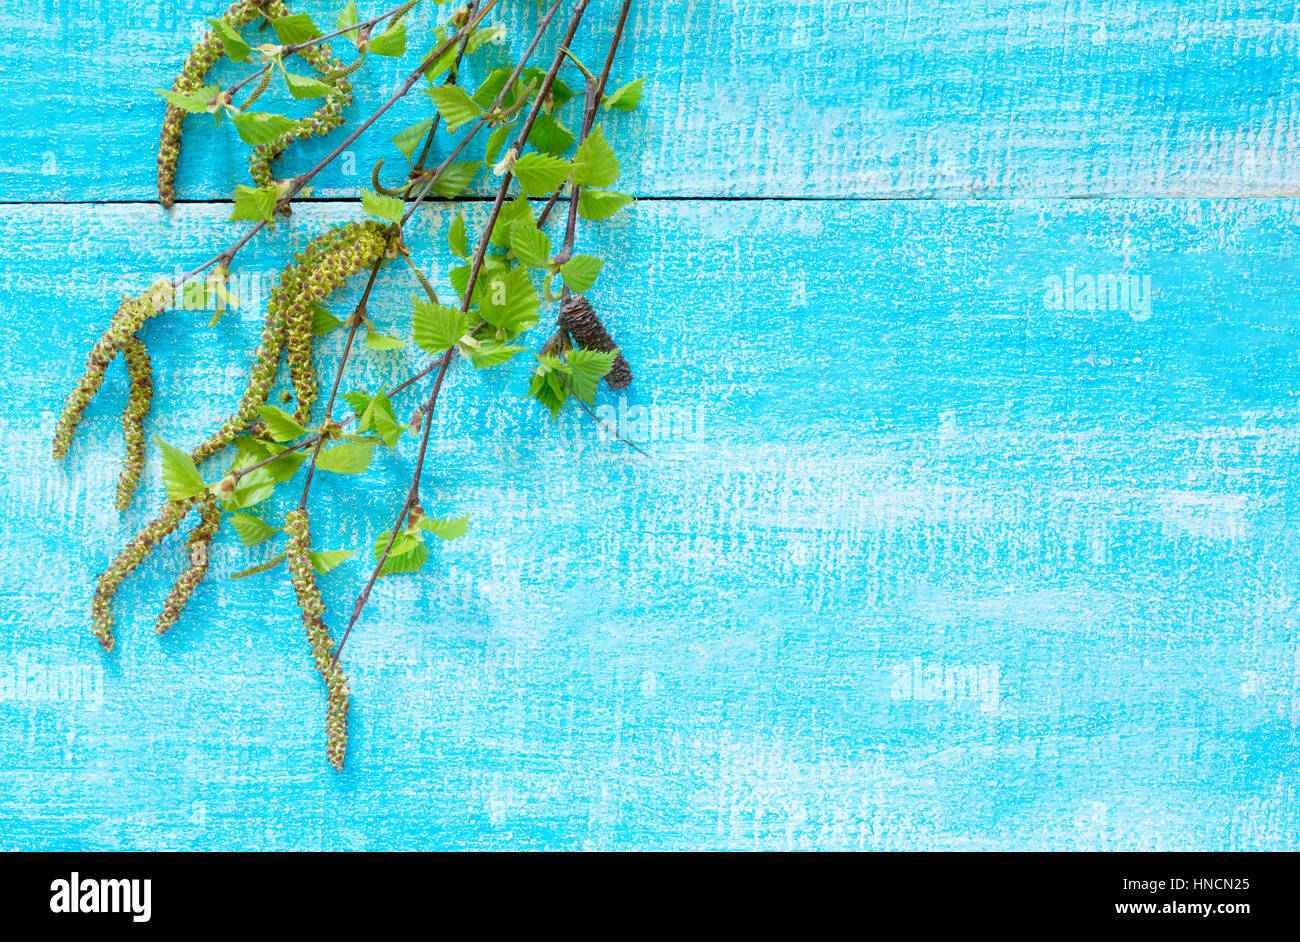 Flowering birch tree branches on a blue wooden background, with space for text. - Stock Image